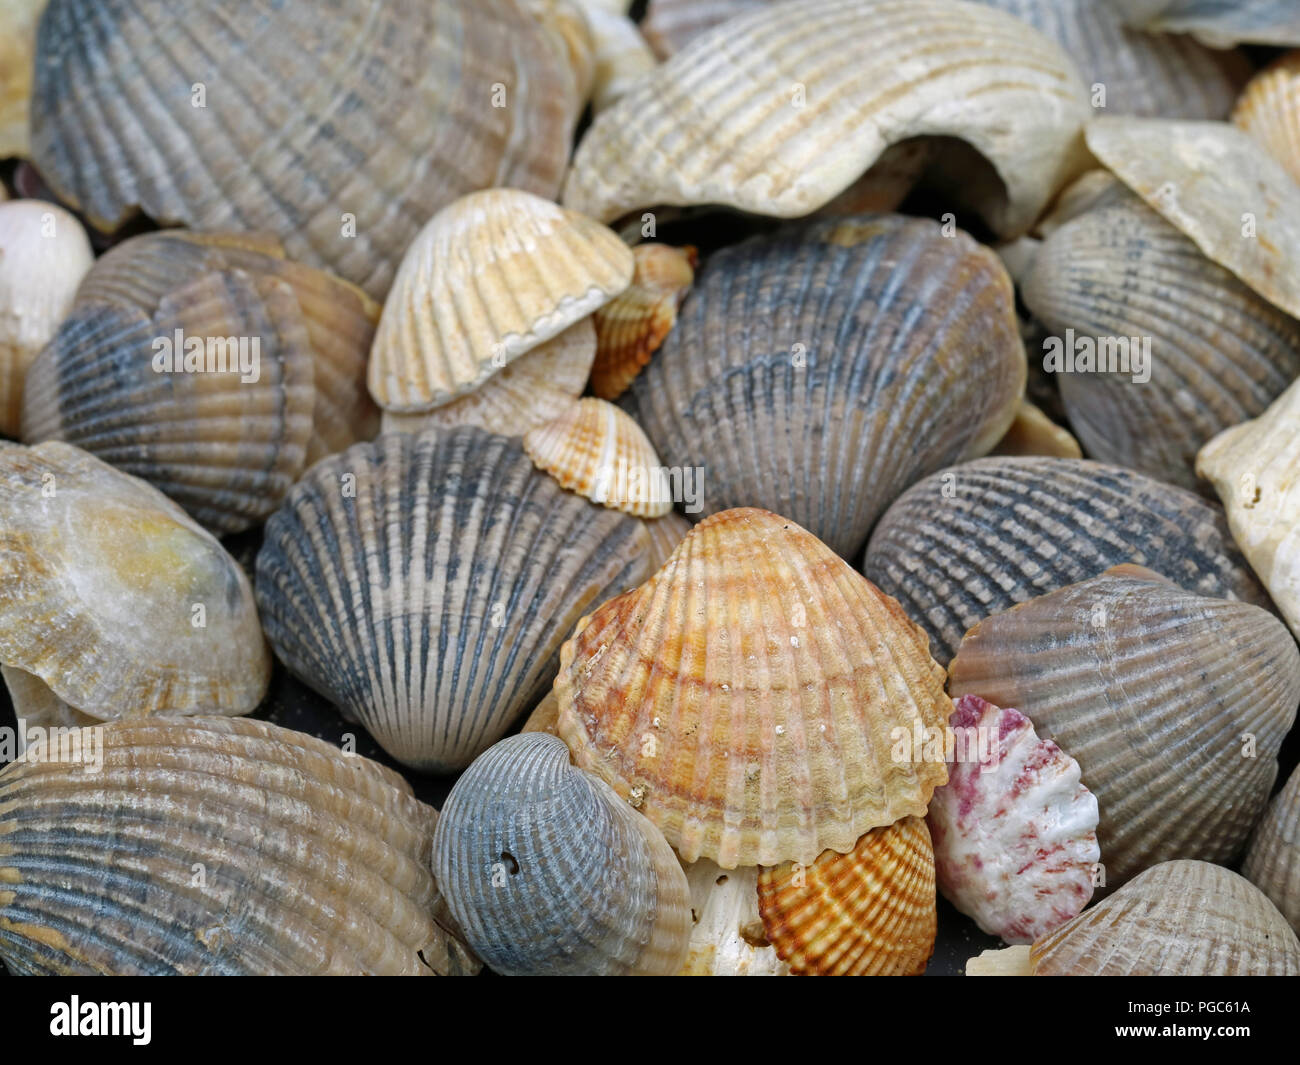 close up of different shellfish found on Mediterranean Sea Stock Photo